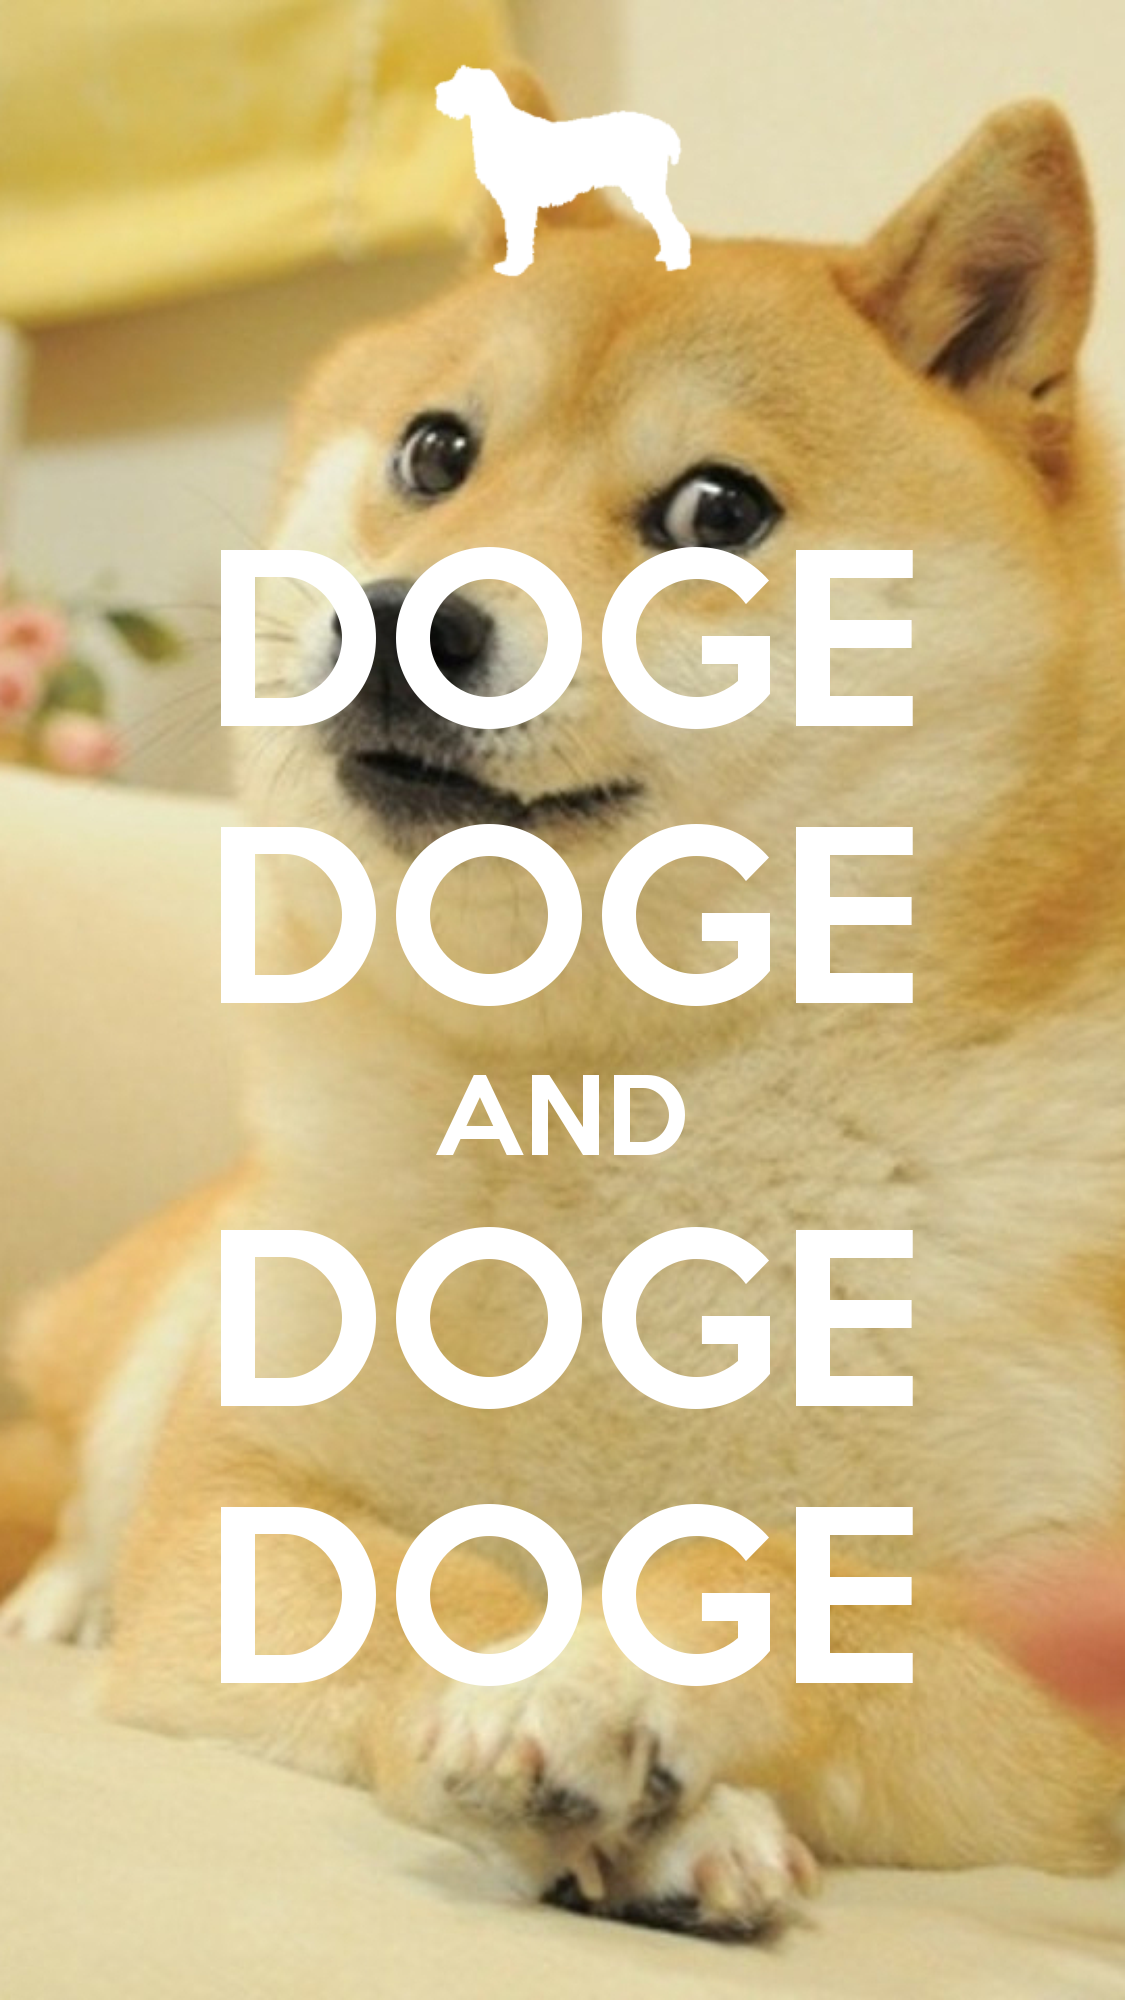 doge-doge-and-doge-doge-5 | Flickr - Photo Sharing!